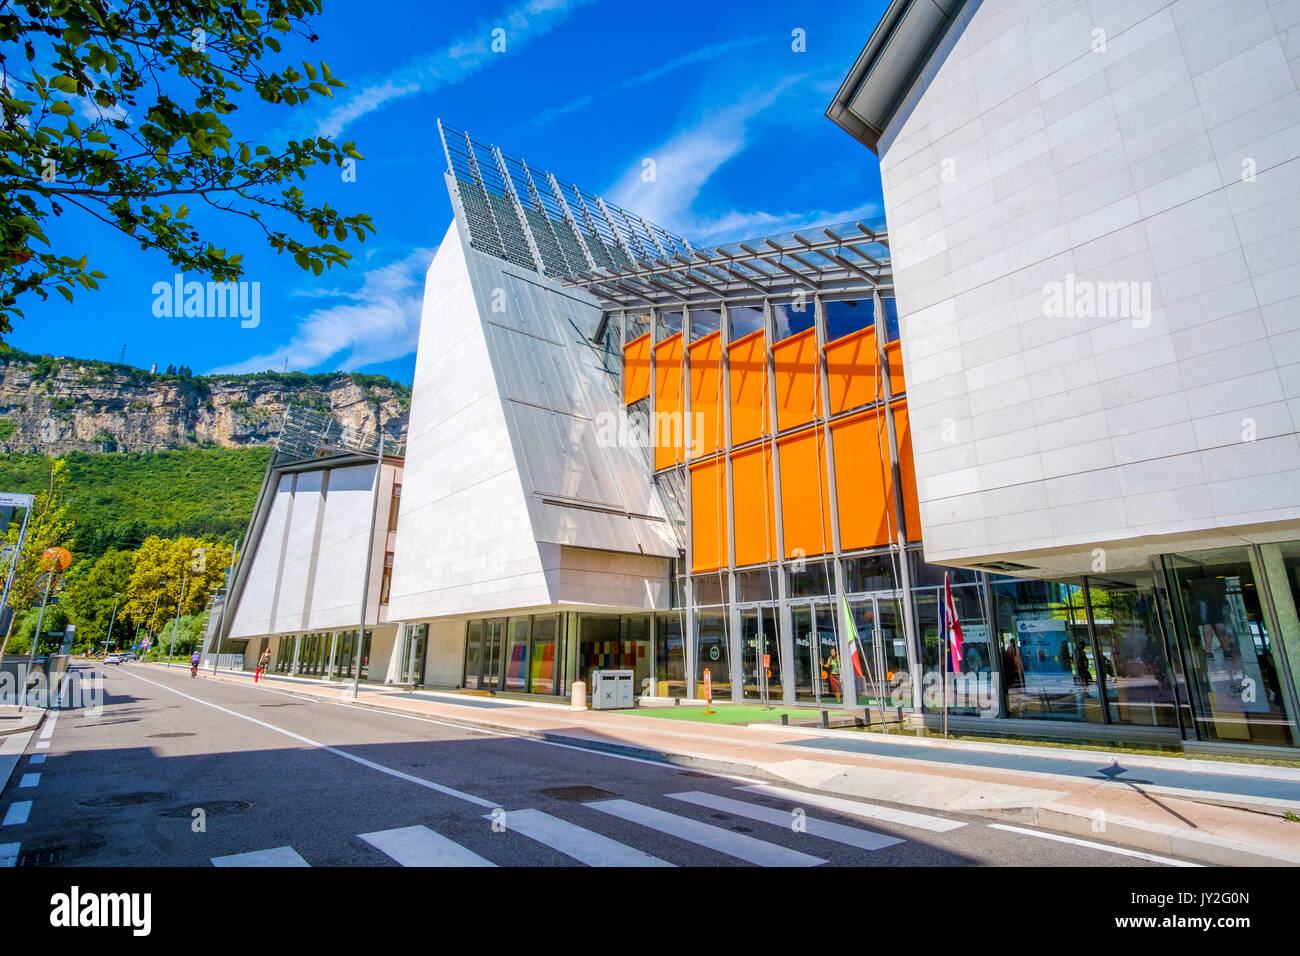 Trento, Italy, 14 Aug 2017: exterior of MUSE modern museum of natural history - building designed by famous architect Renzo Piano - Stock Image